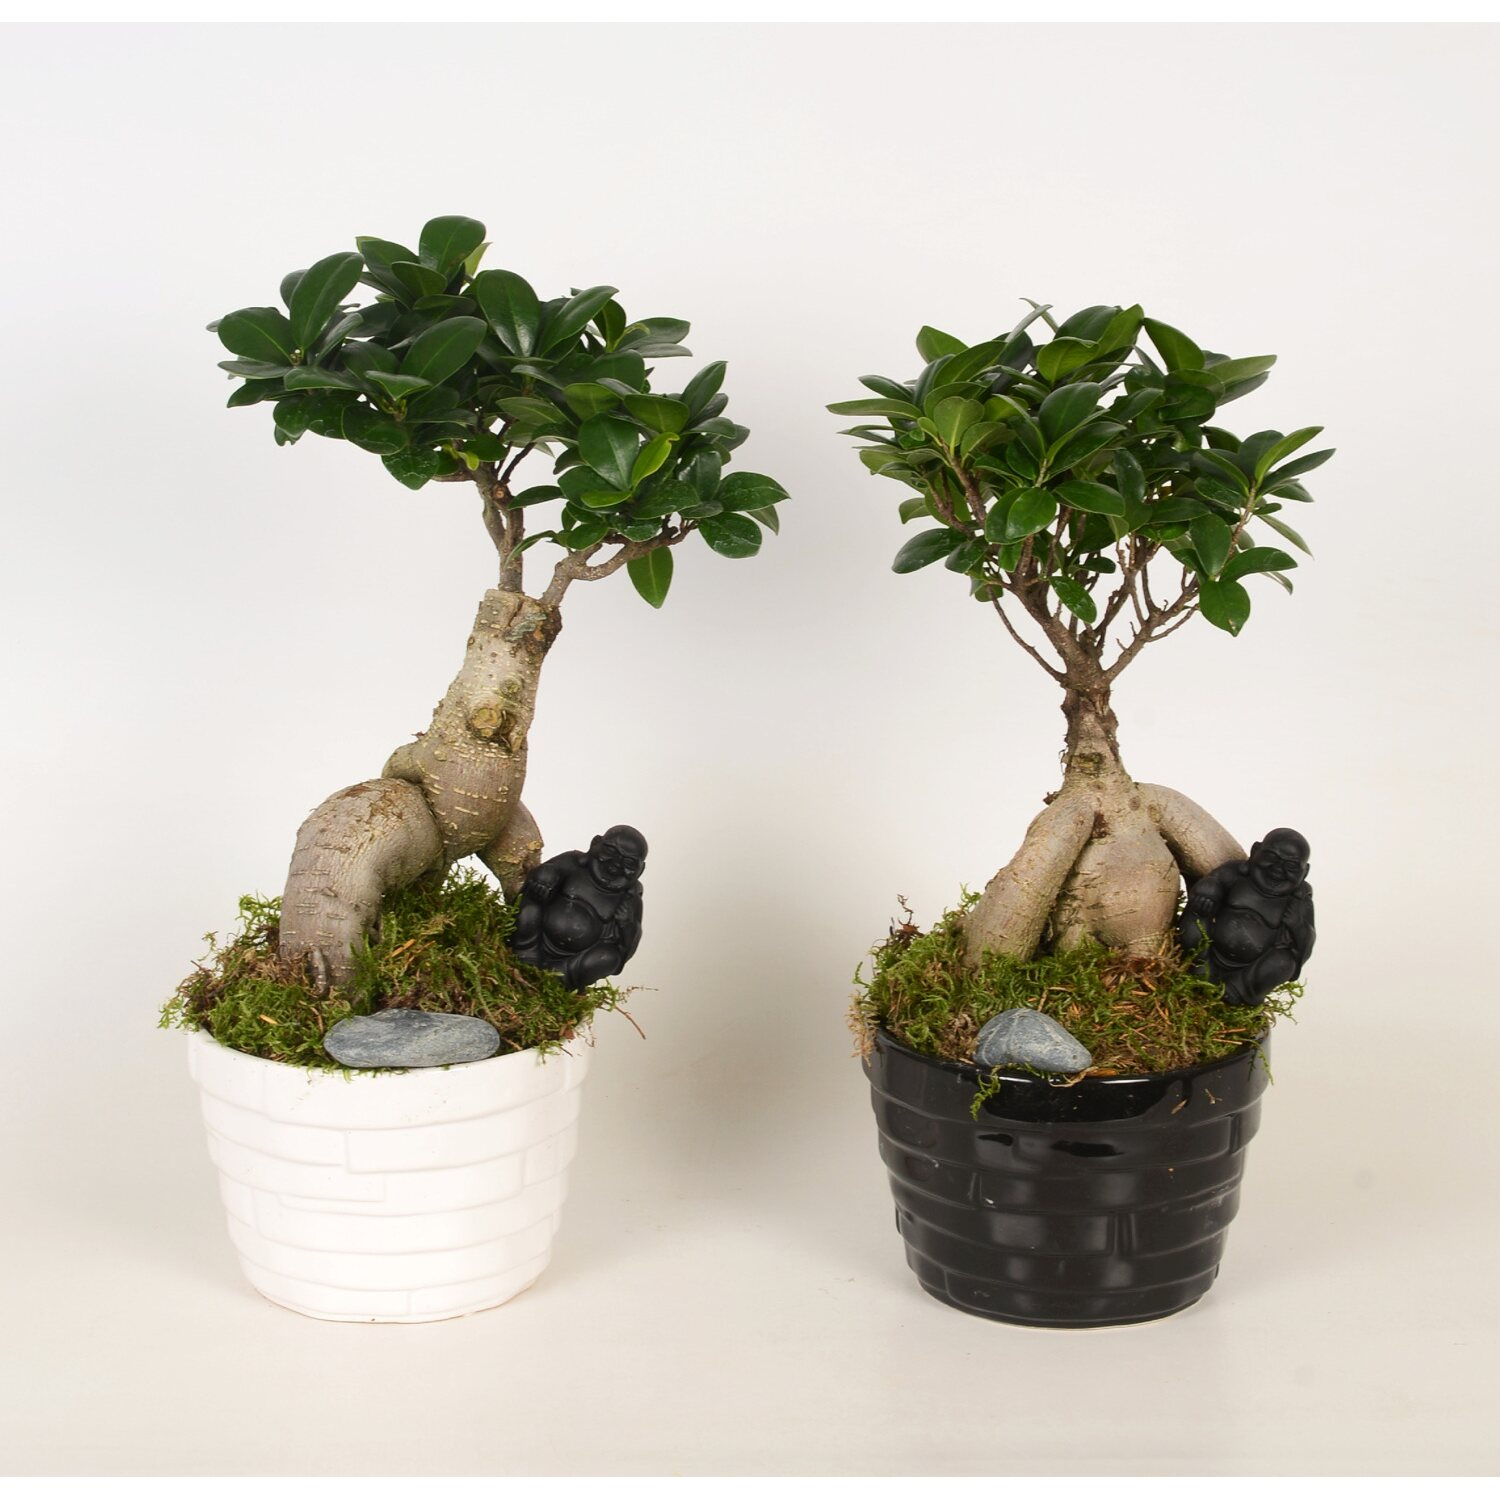 ficus microcarpa ginseng in keramik topf 17 cm kaufen bei obi. Black Bedroom Furniture Sets. Home Design Ideas